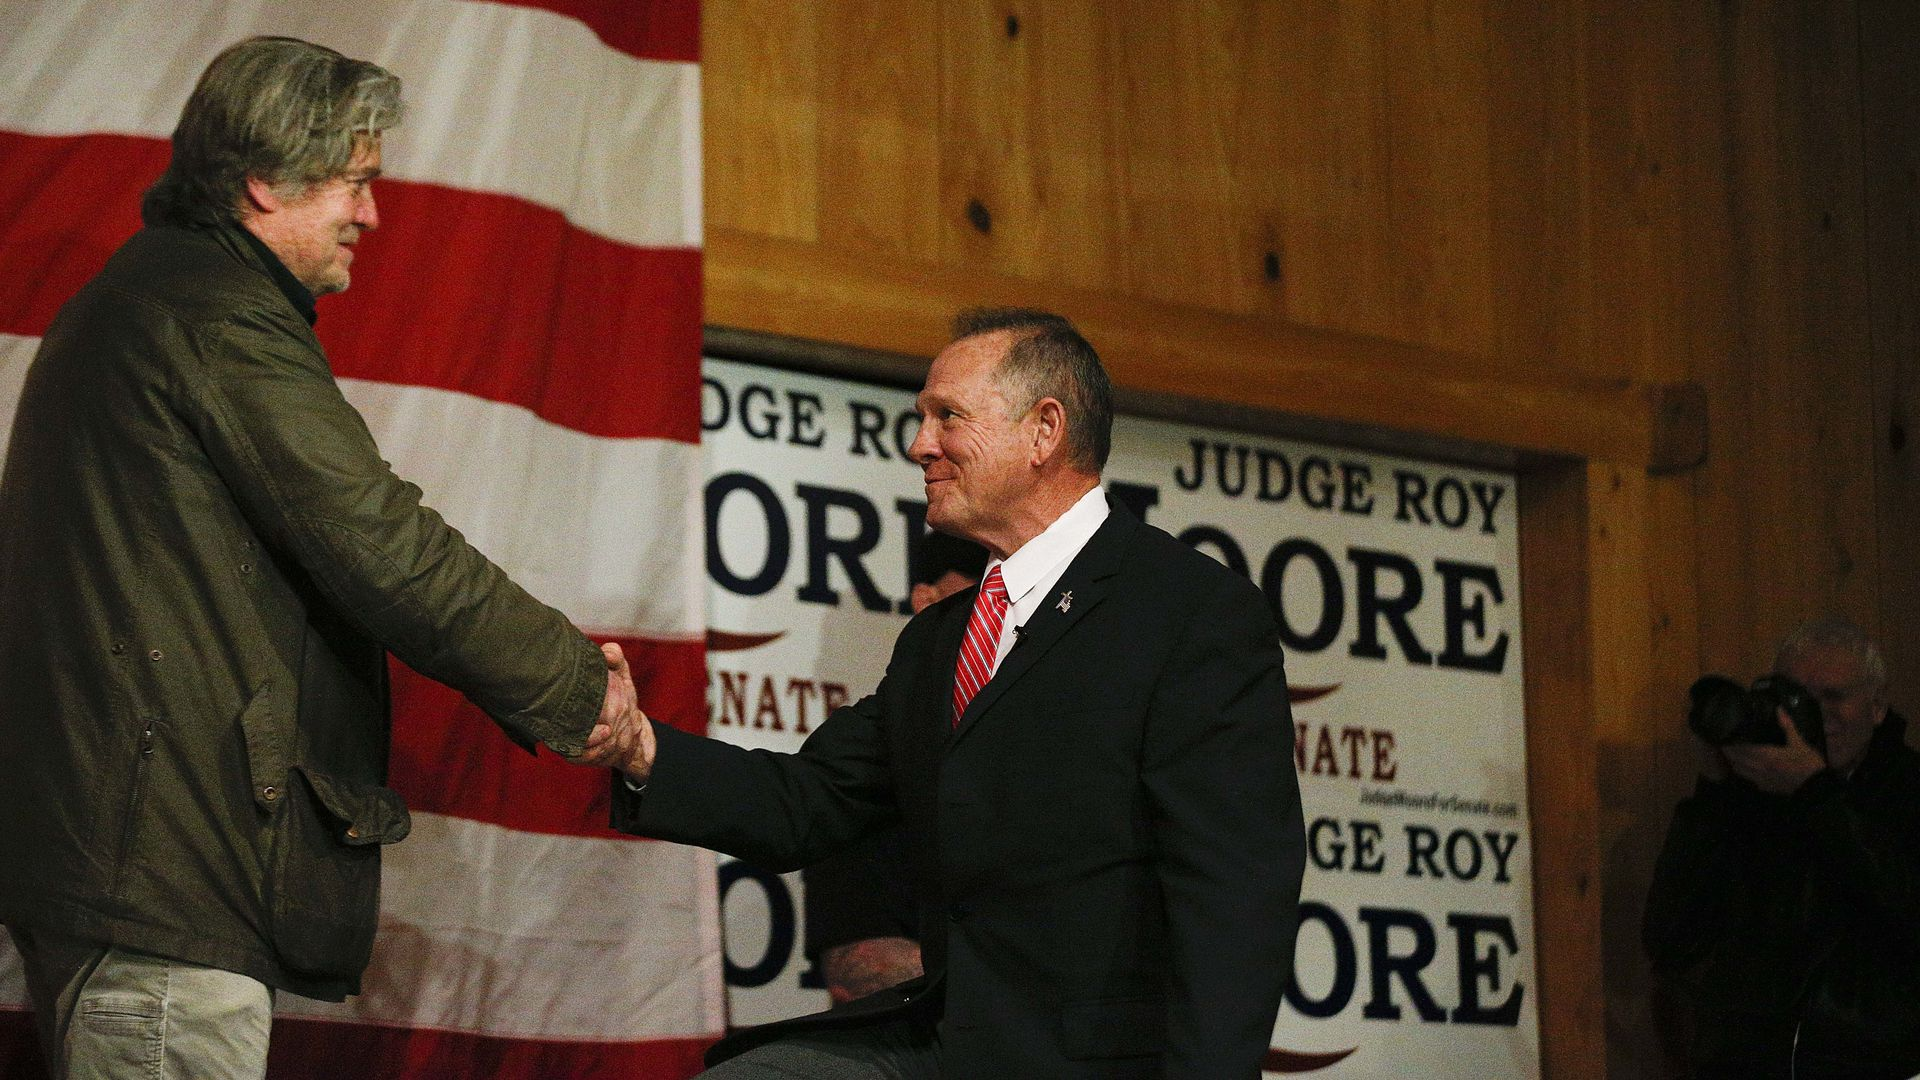 Steve Bannon introduces U.S. Senate candidate Roy Moore at a rally.